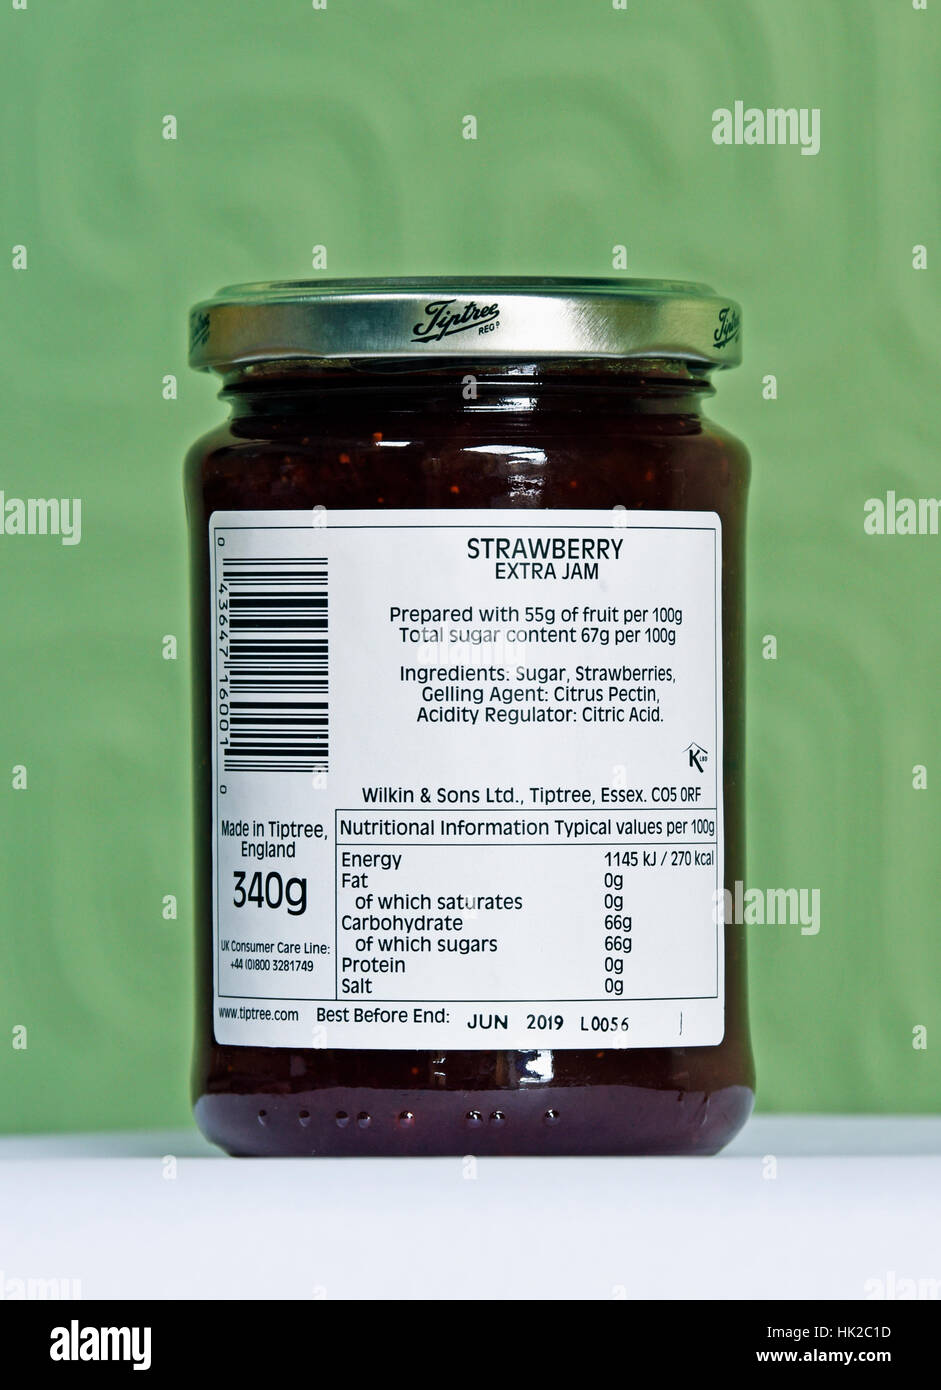 ingredients-and-nutritional-information-jar-of-wilkin-sons-ltd-tiptree-HK2C1D.jpg